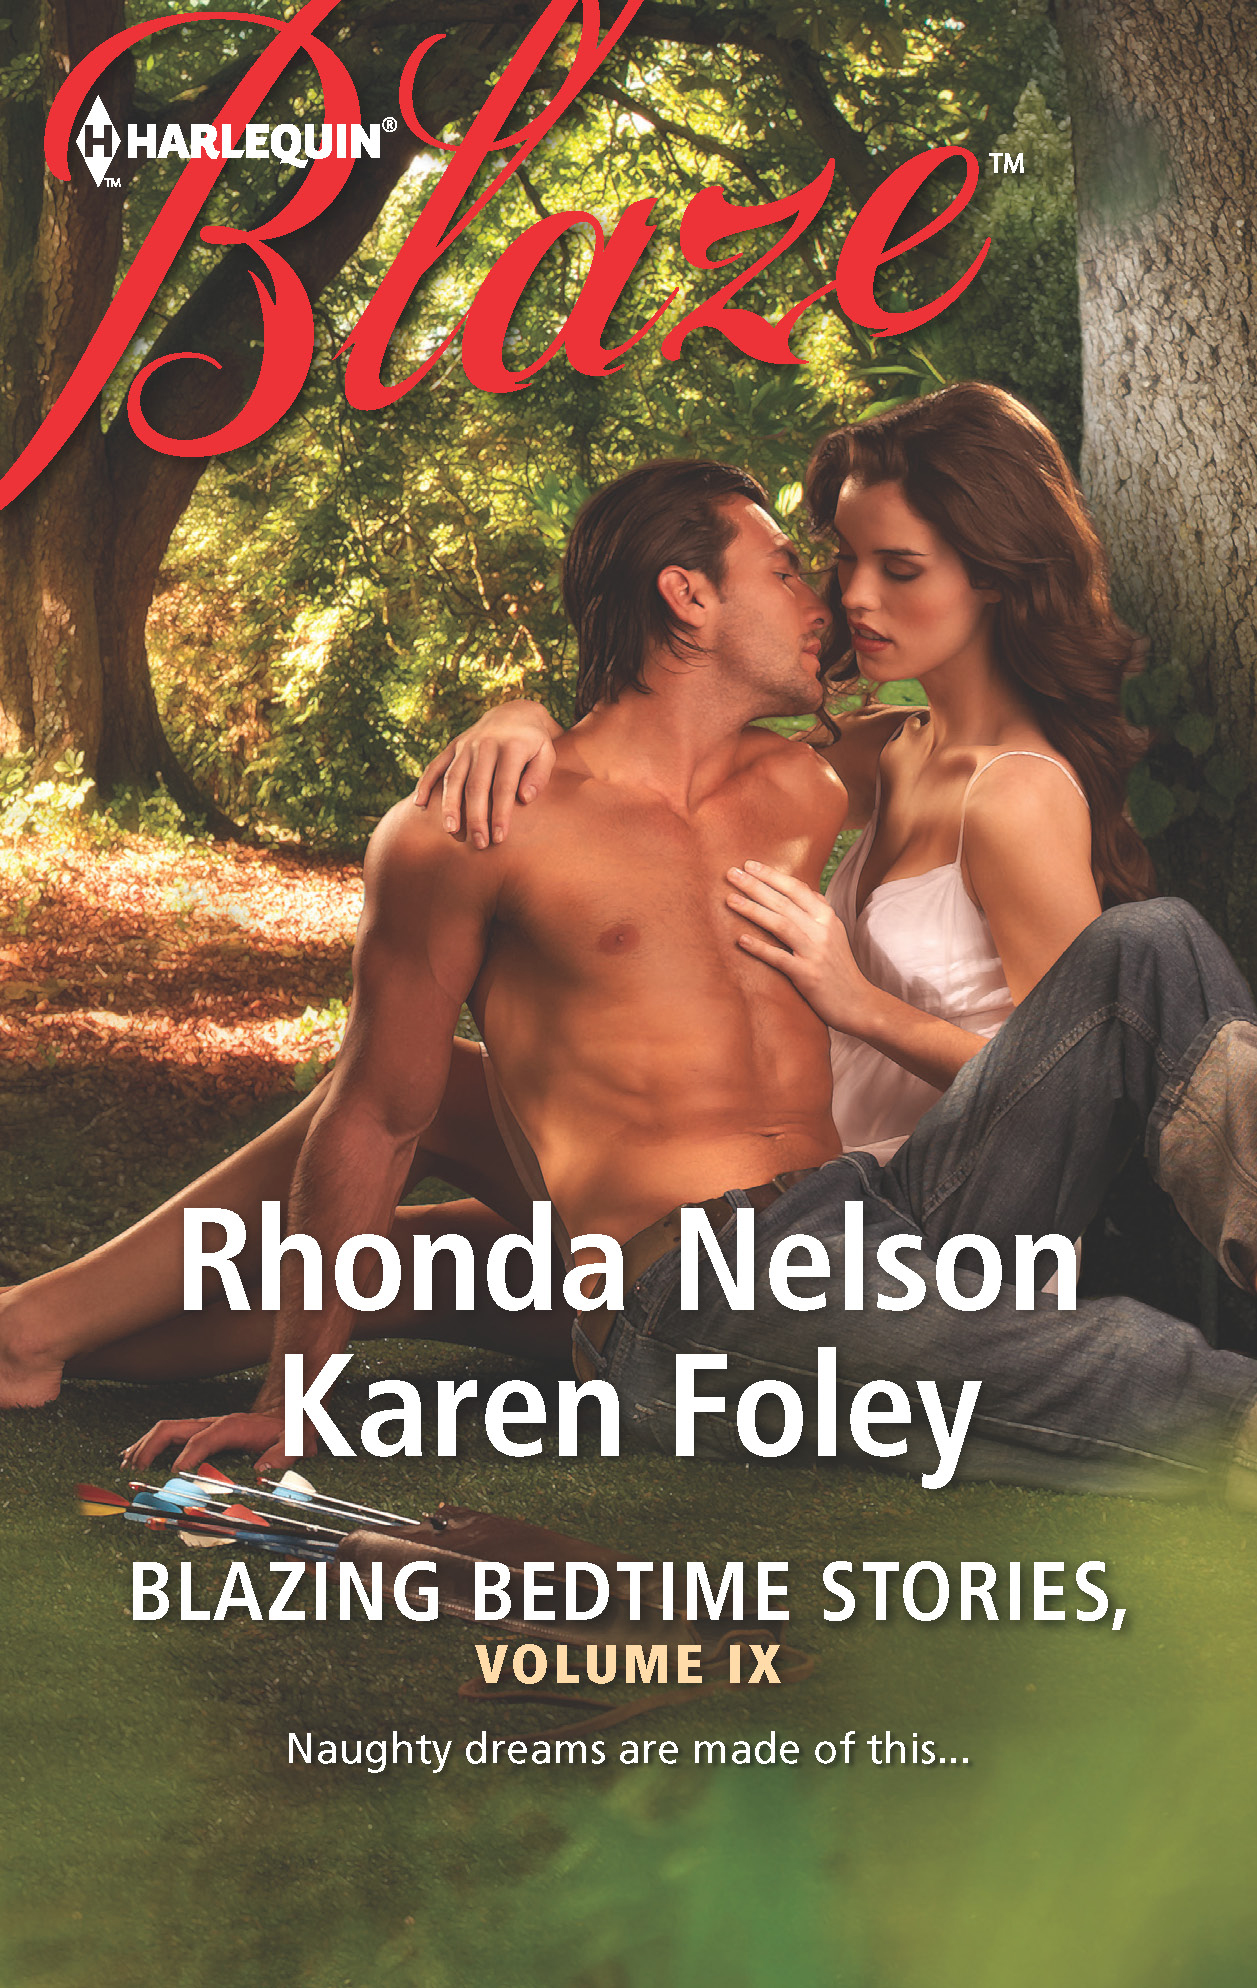 Blazing Bedtime Stories, Volume IX: The Equalizer\God's Gift to Women By: Karen Foley,Rhonda Nelson